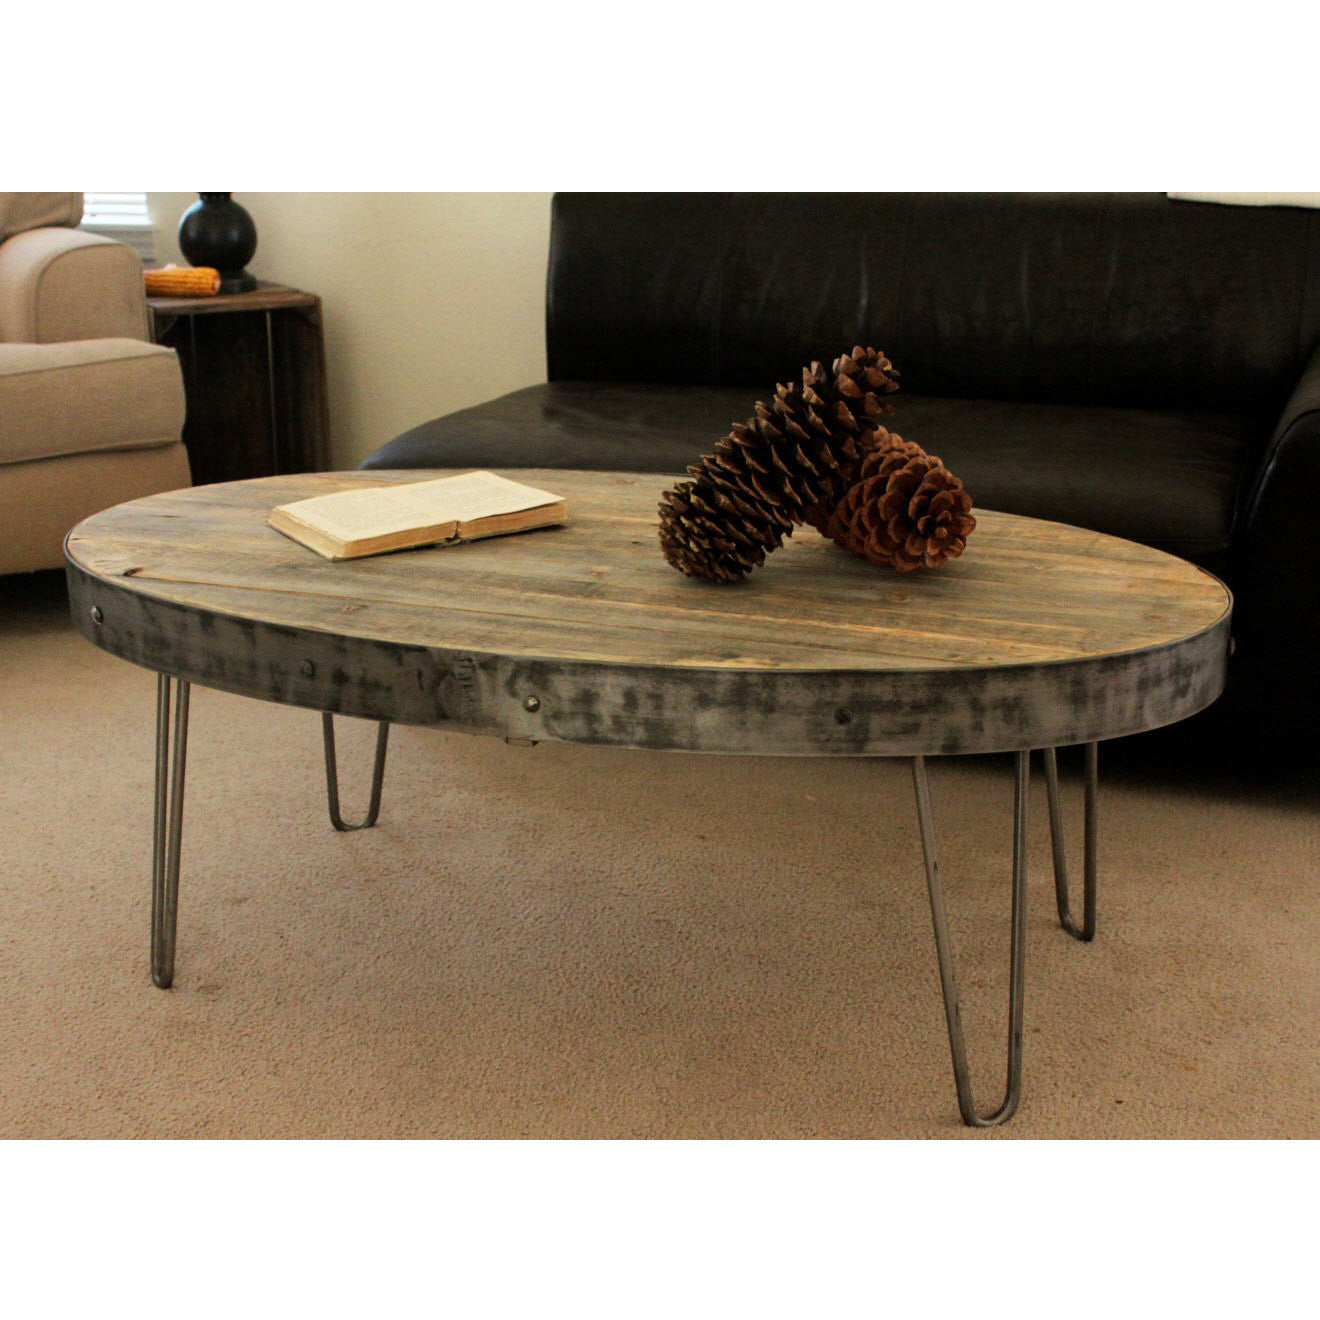 Reclaimed Wood Oval Industrial Coffee Table The Spotted Door